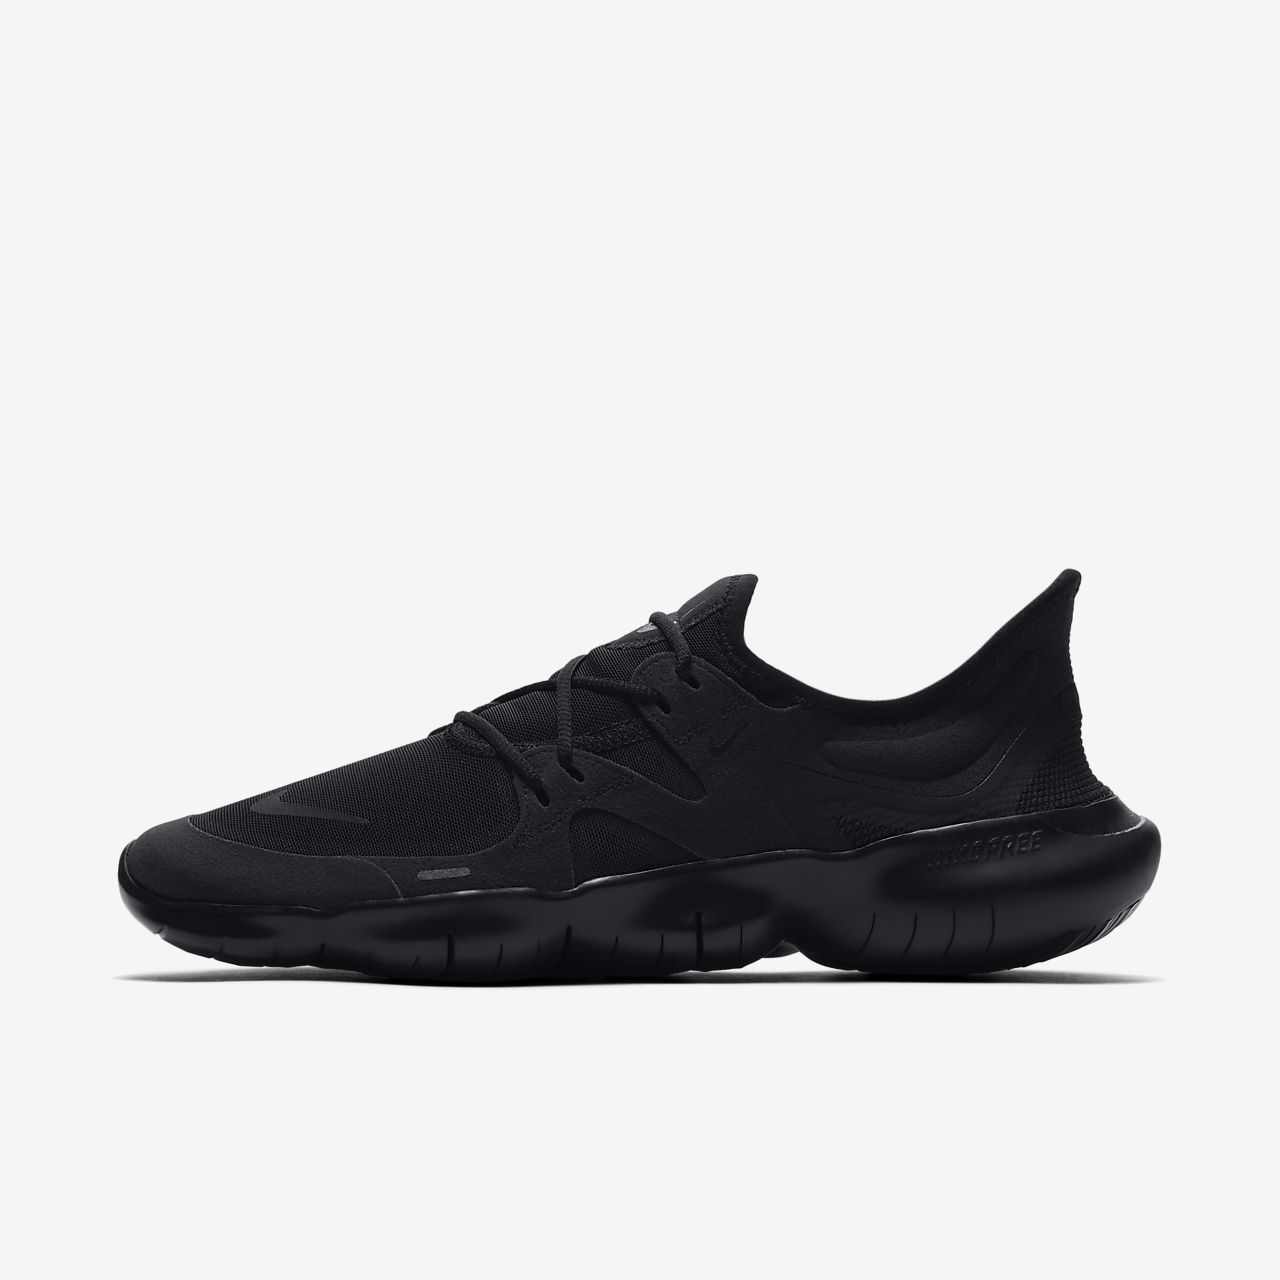 Shoes1 | Nike free shoes, All black running shoes, Running